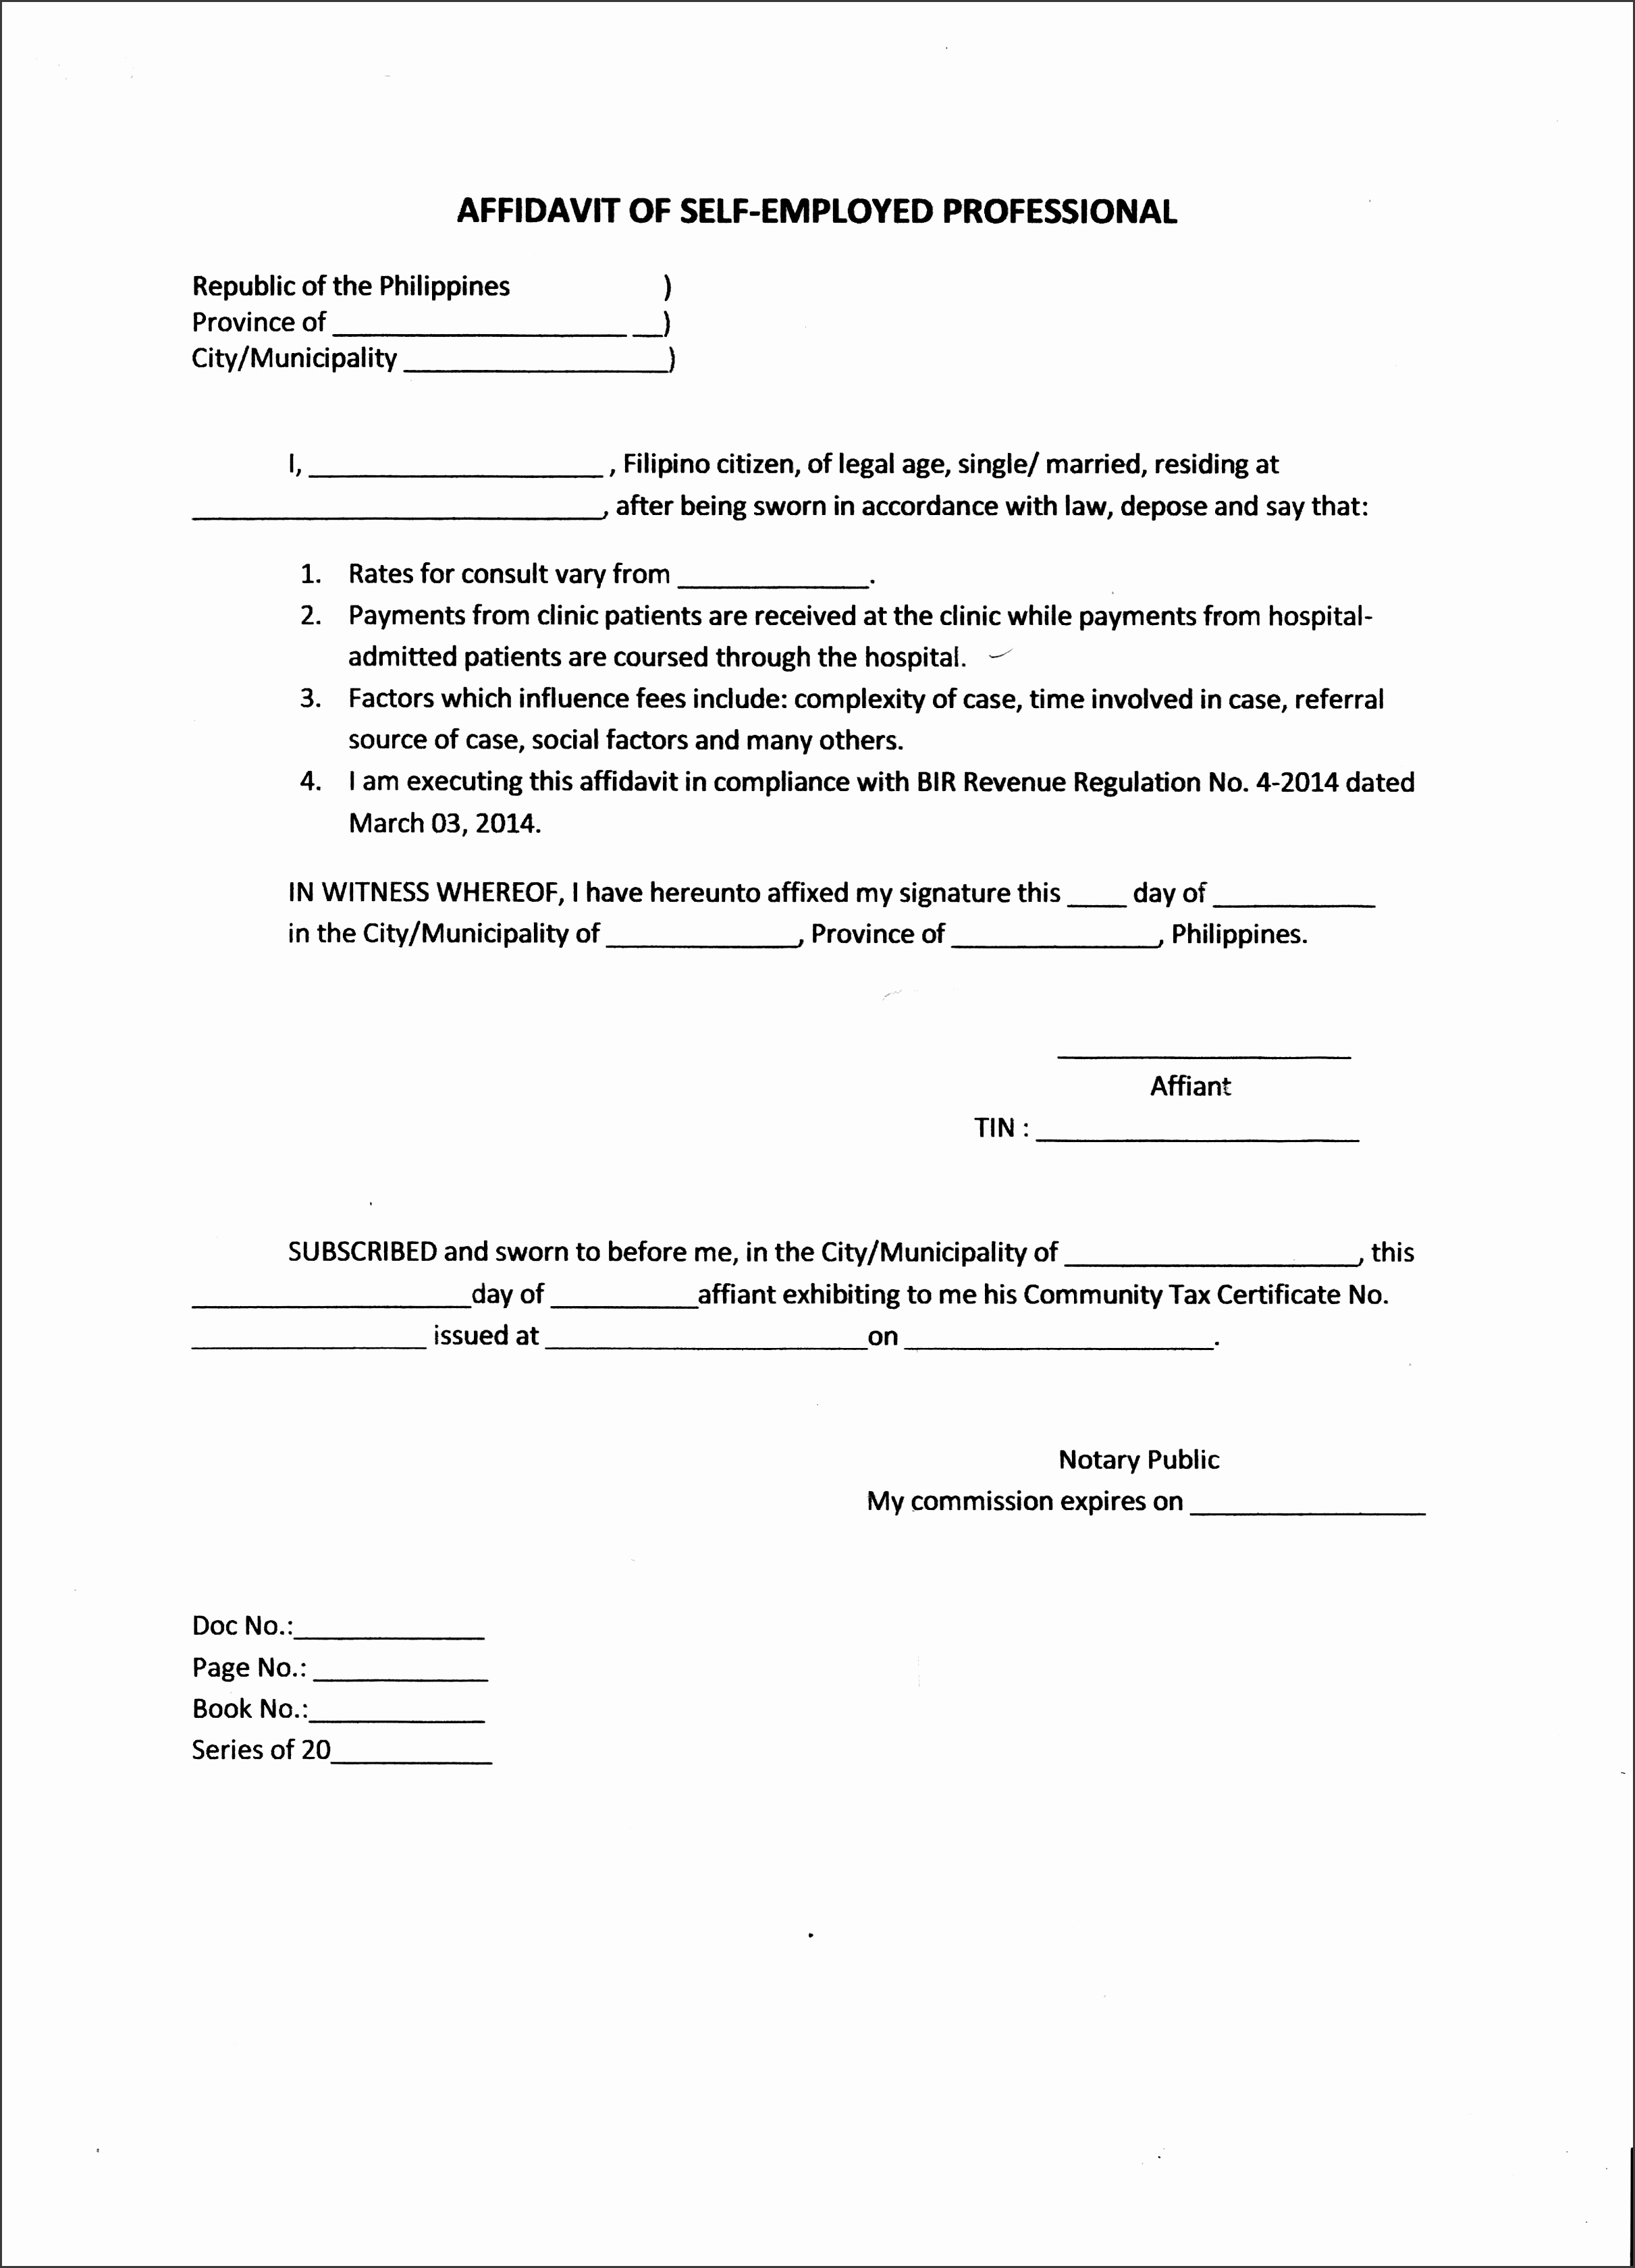 brilliant affidavit of self employed professional sample with sworn and declaration and blank space a part